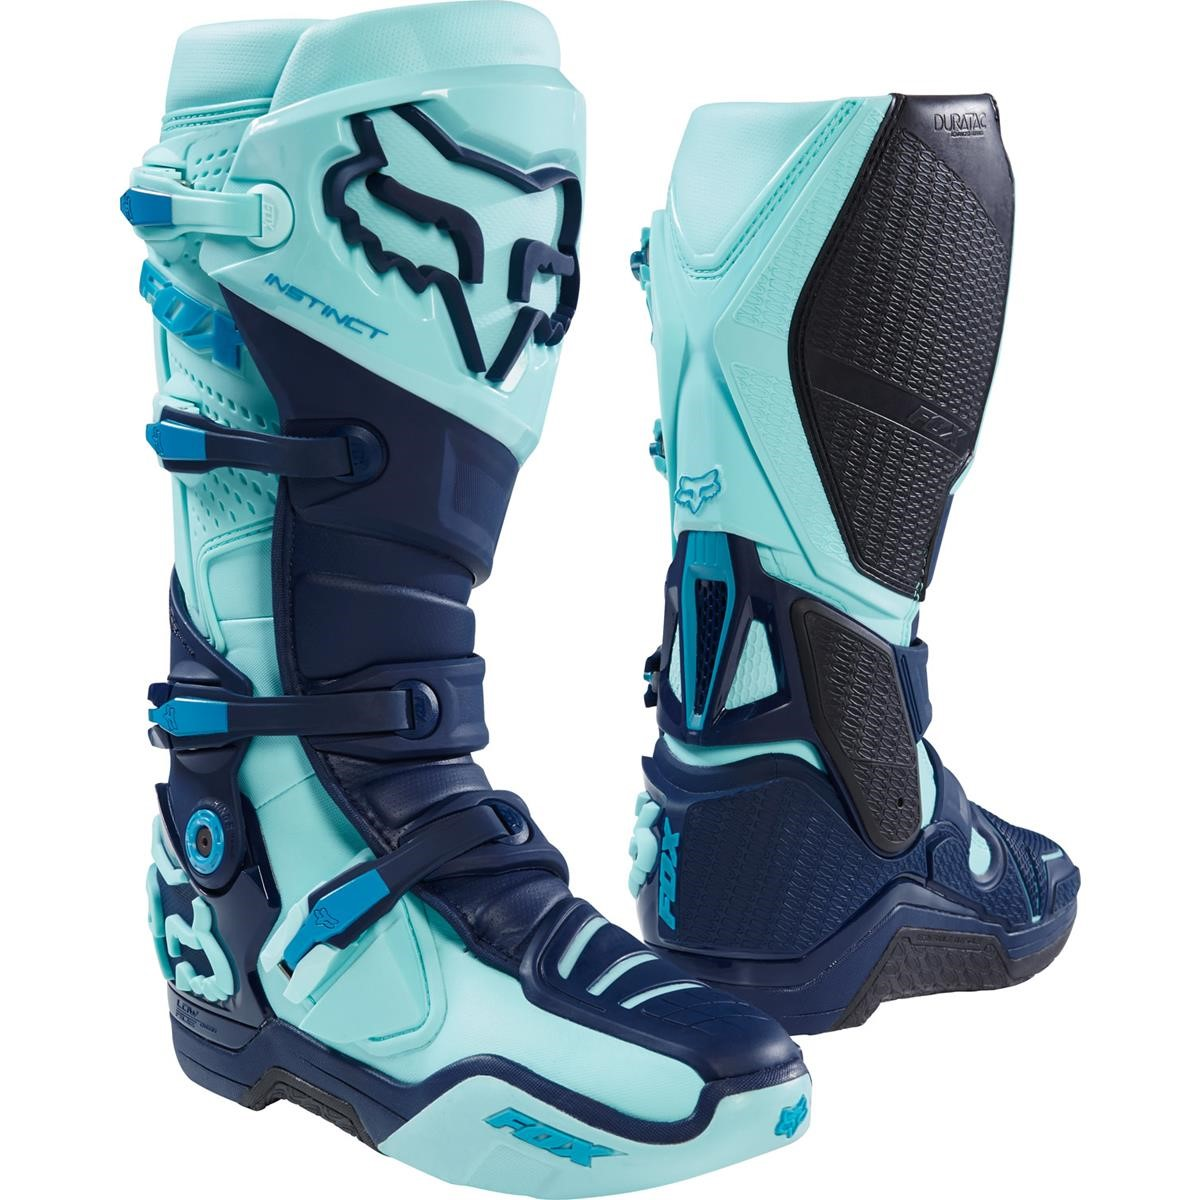 fox motocross stiefel instinct ice blue limited edition glen helen 2016 maciag offroad. Black Bedroom Furniture Sets. Home Design Ideas